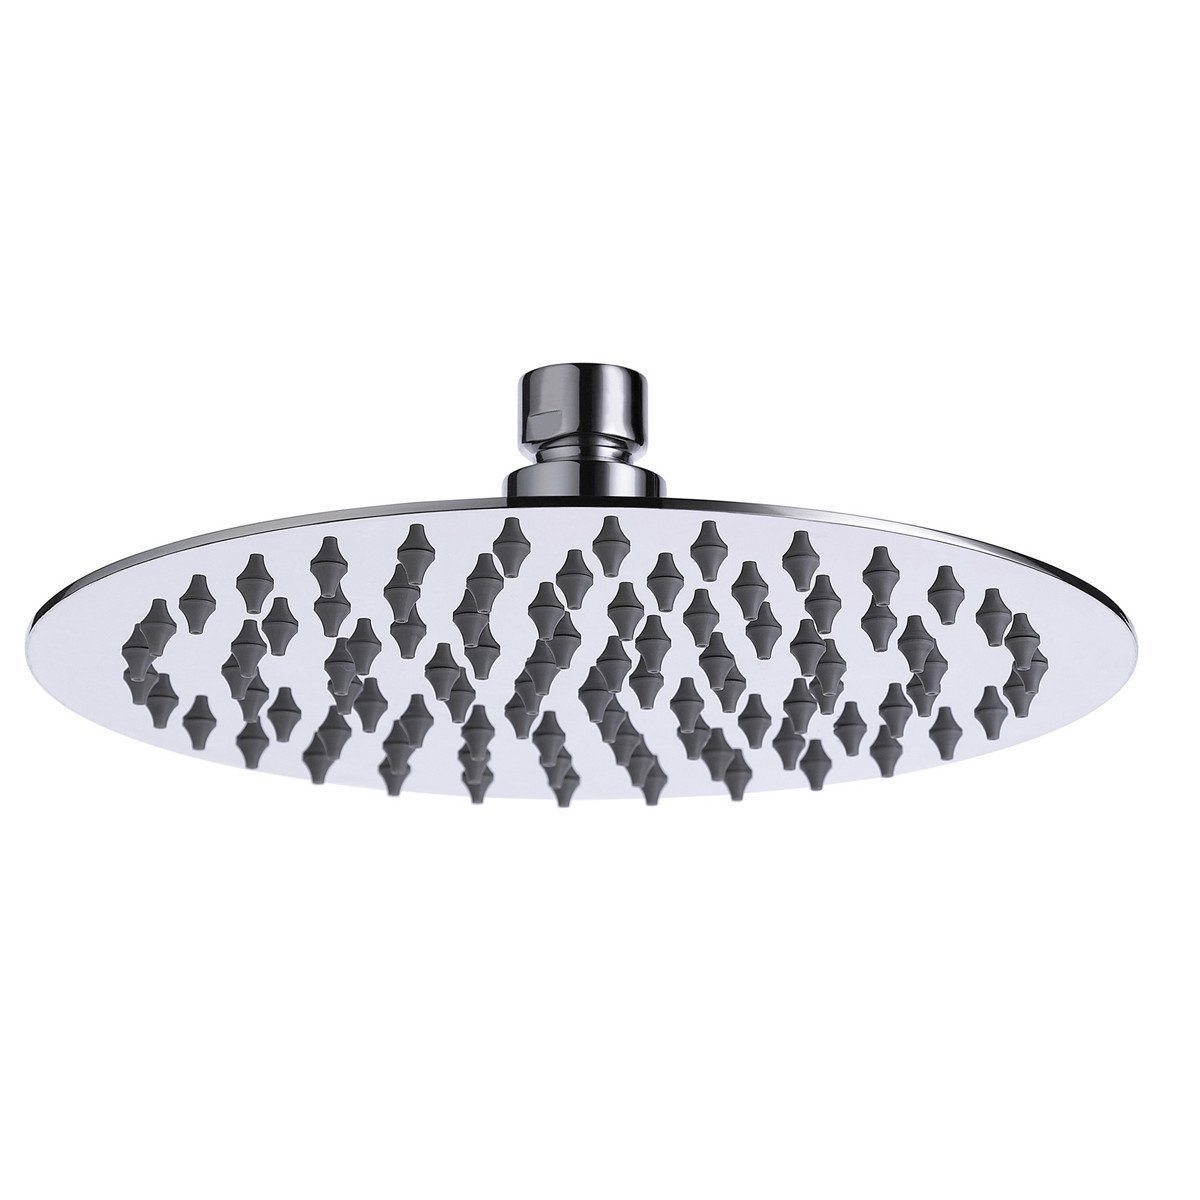 Coby Stainless Steel High Pressure 8'' Round Rain Shower head - Adjustable Metal Swivel Ball Joint - Best Relaxation and Spa